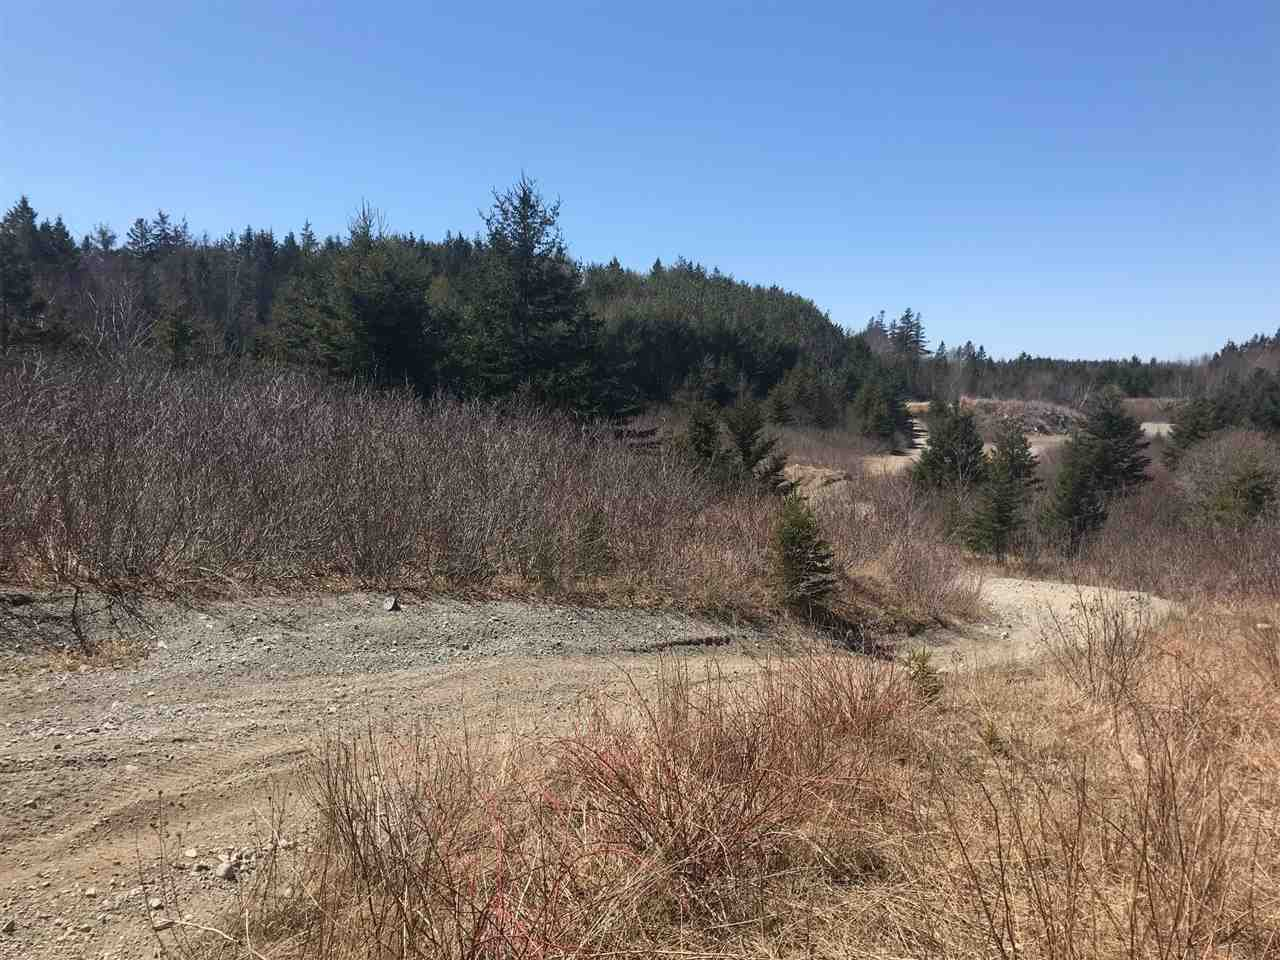 Photo 5: Photos: 11574 Highway 7 in Lake Charlotte: 35-Halifax County East Vacant Land for sale (Halifax-Dartmouth)  : MLS®# 201927372